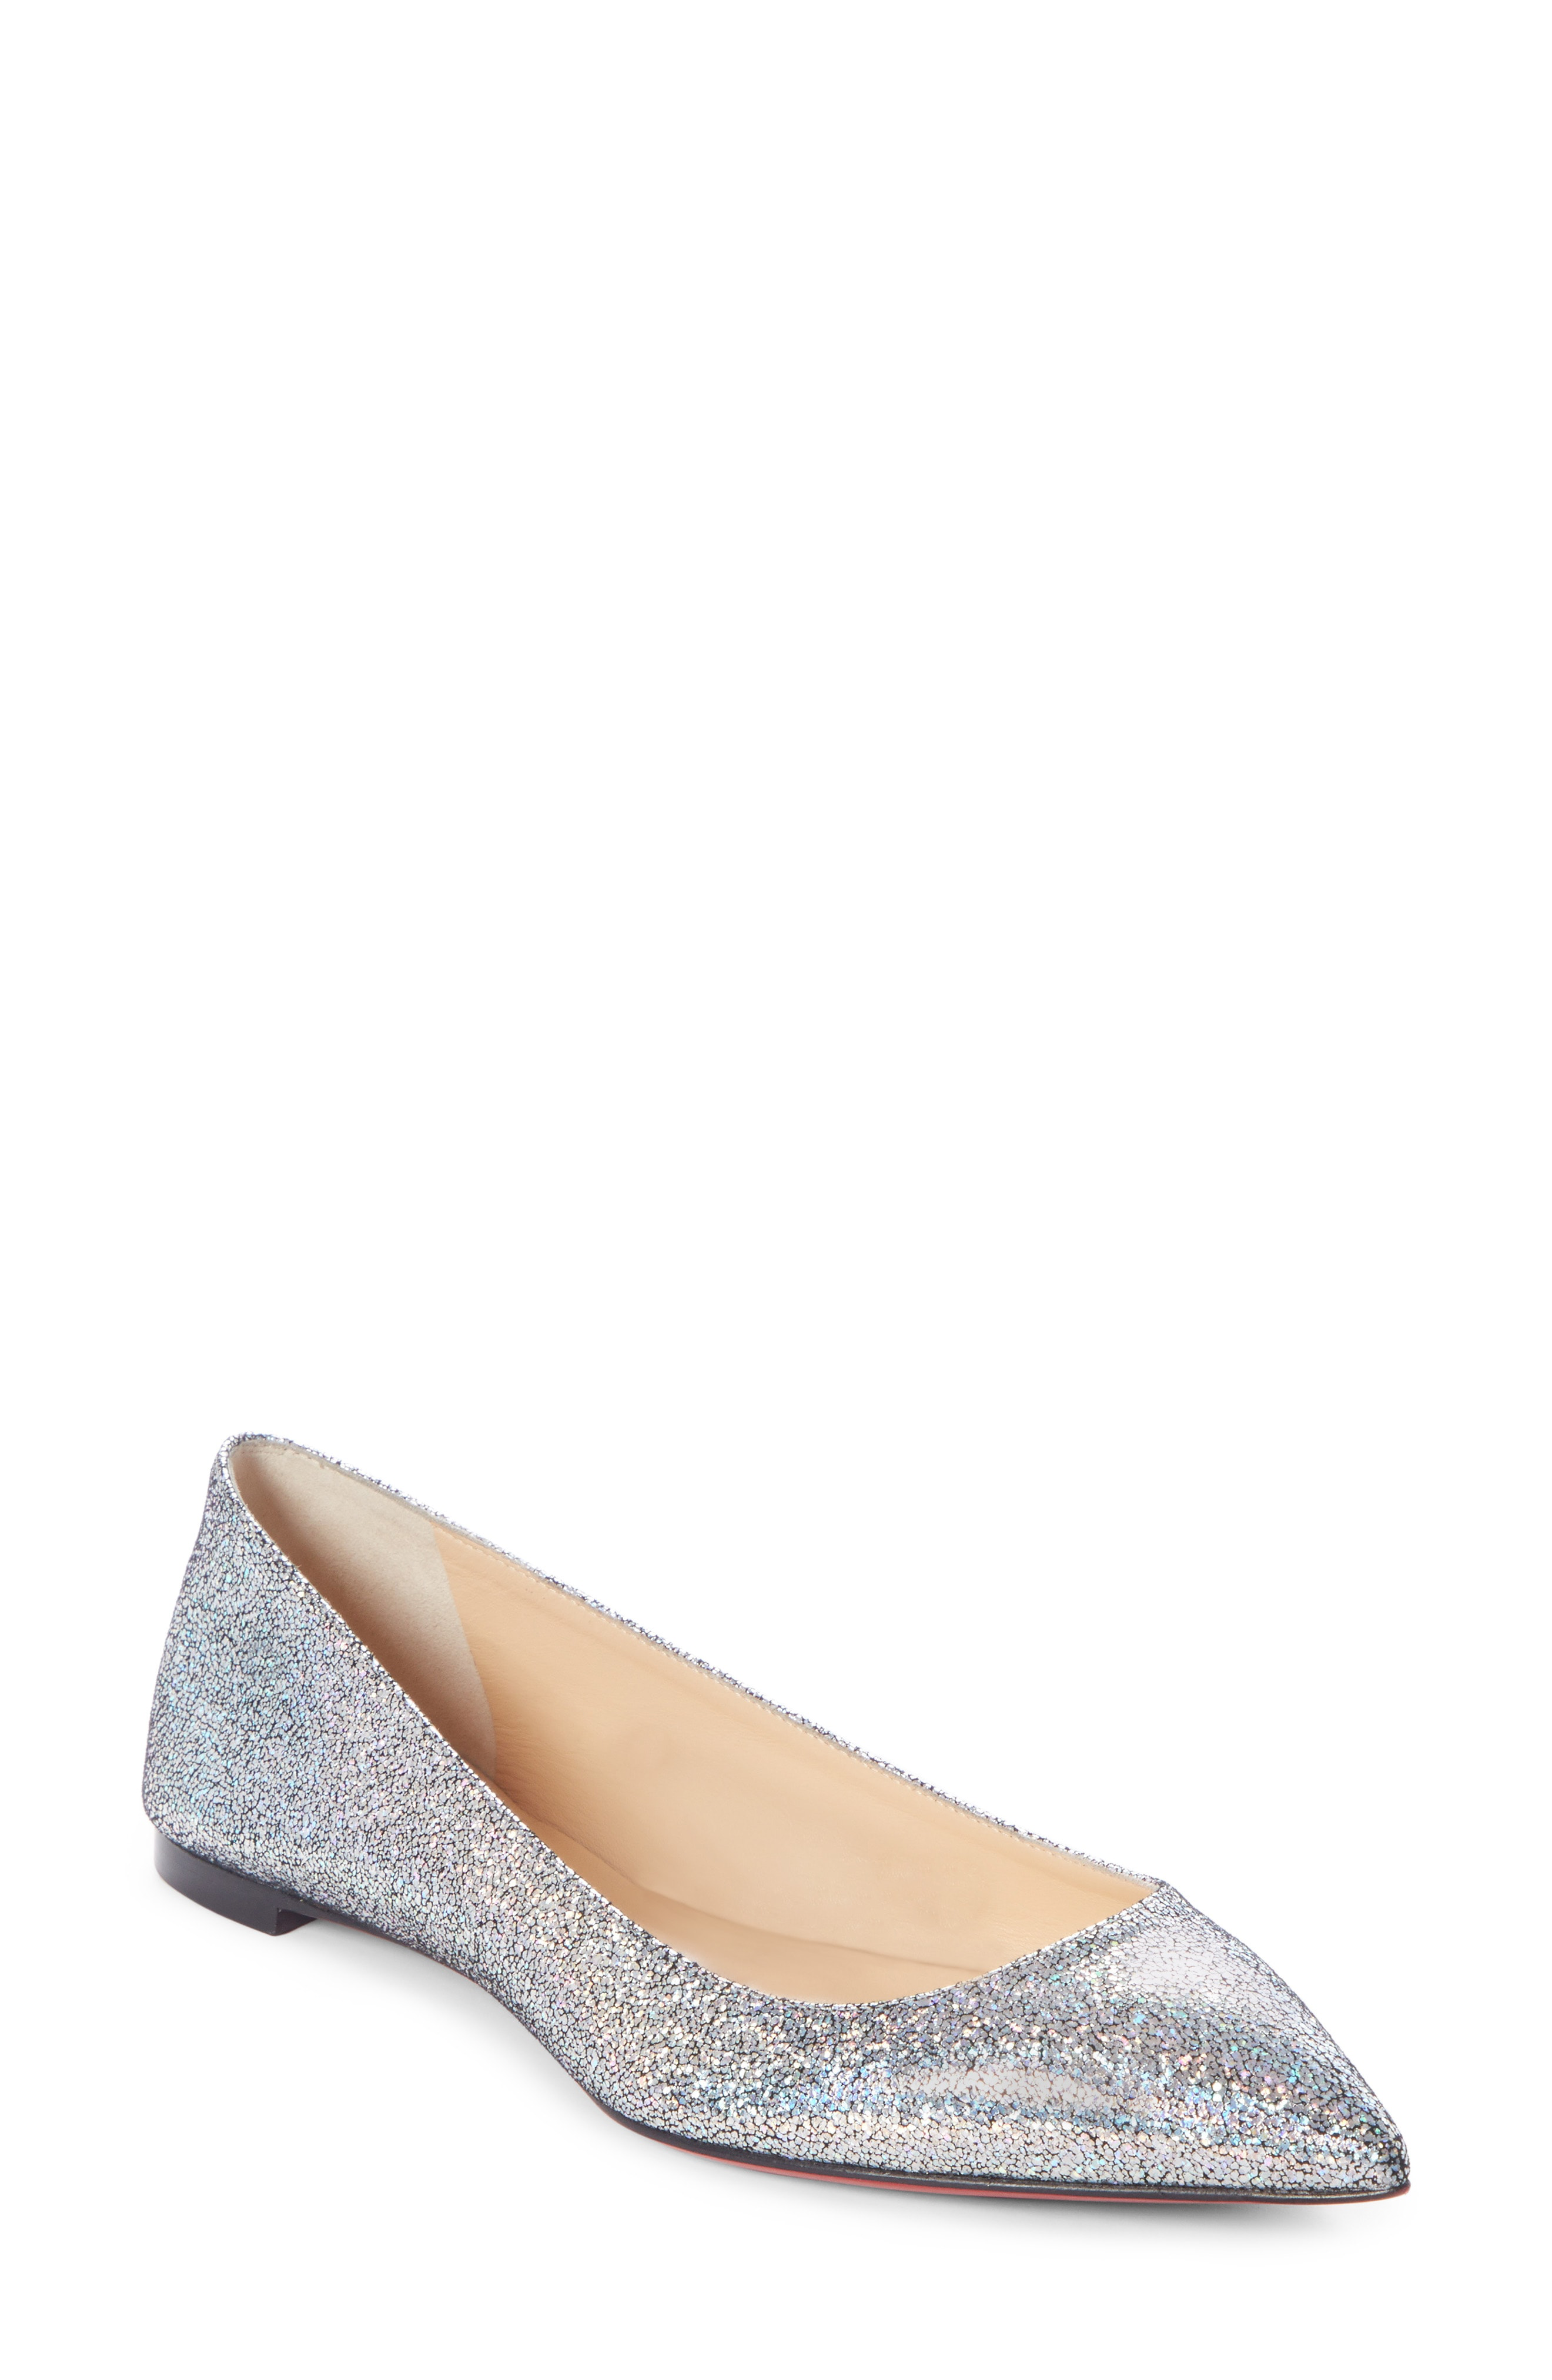 1f93c03d0210 Christian Louboutin Ballalla Iridescent Glittered Leather Point-Toe Flats  In Silver